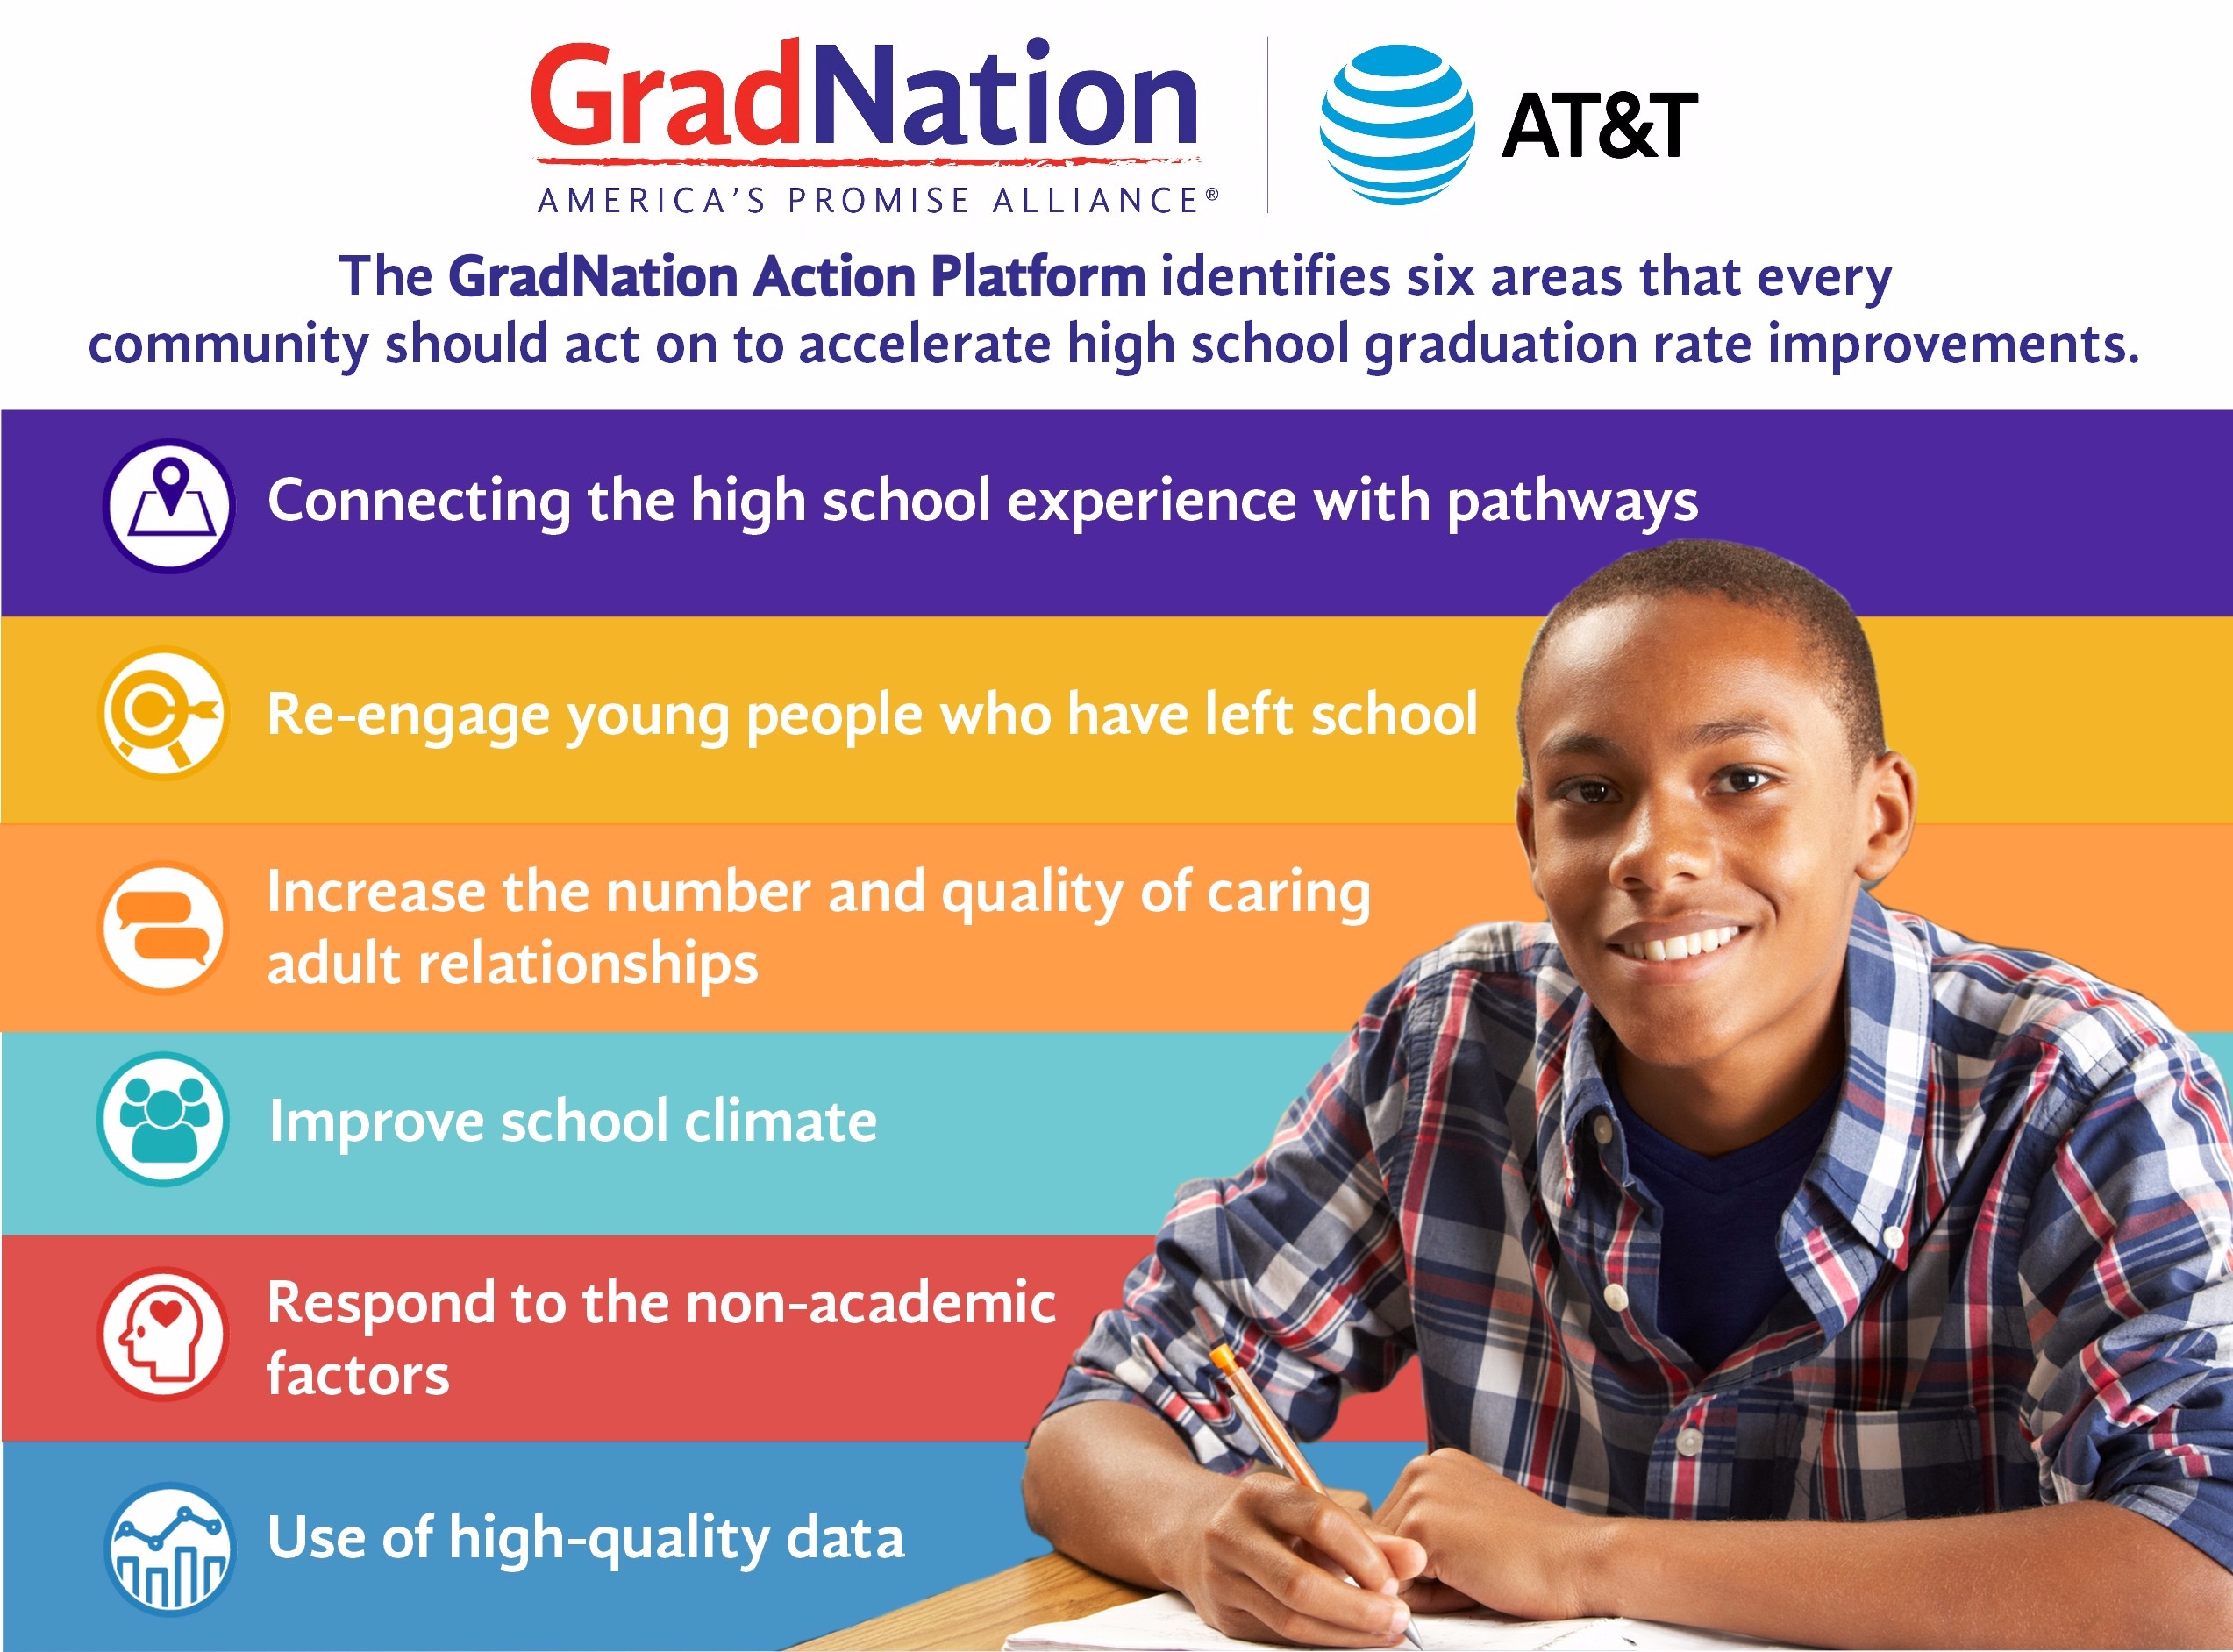 The GradNation Action Platform identifies six areas that every community should act on to accelerate high school graduation rate improvements.